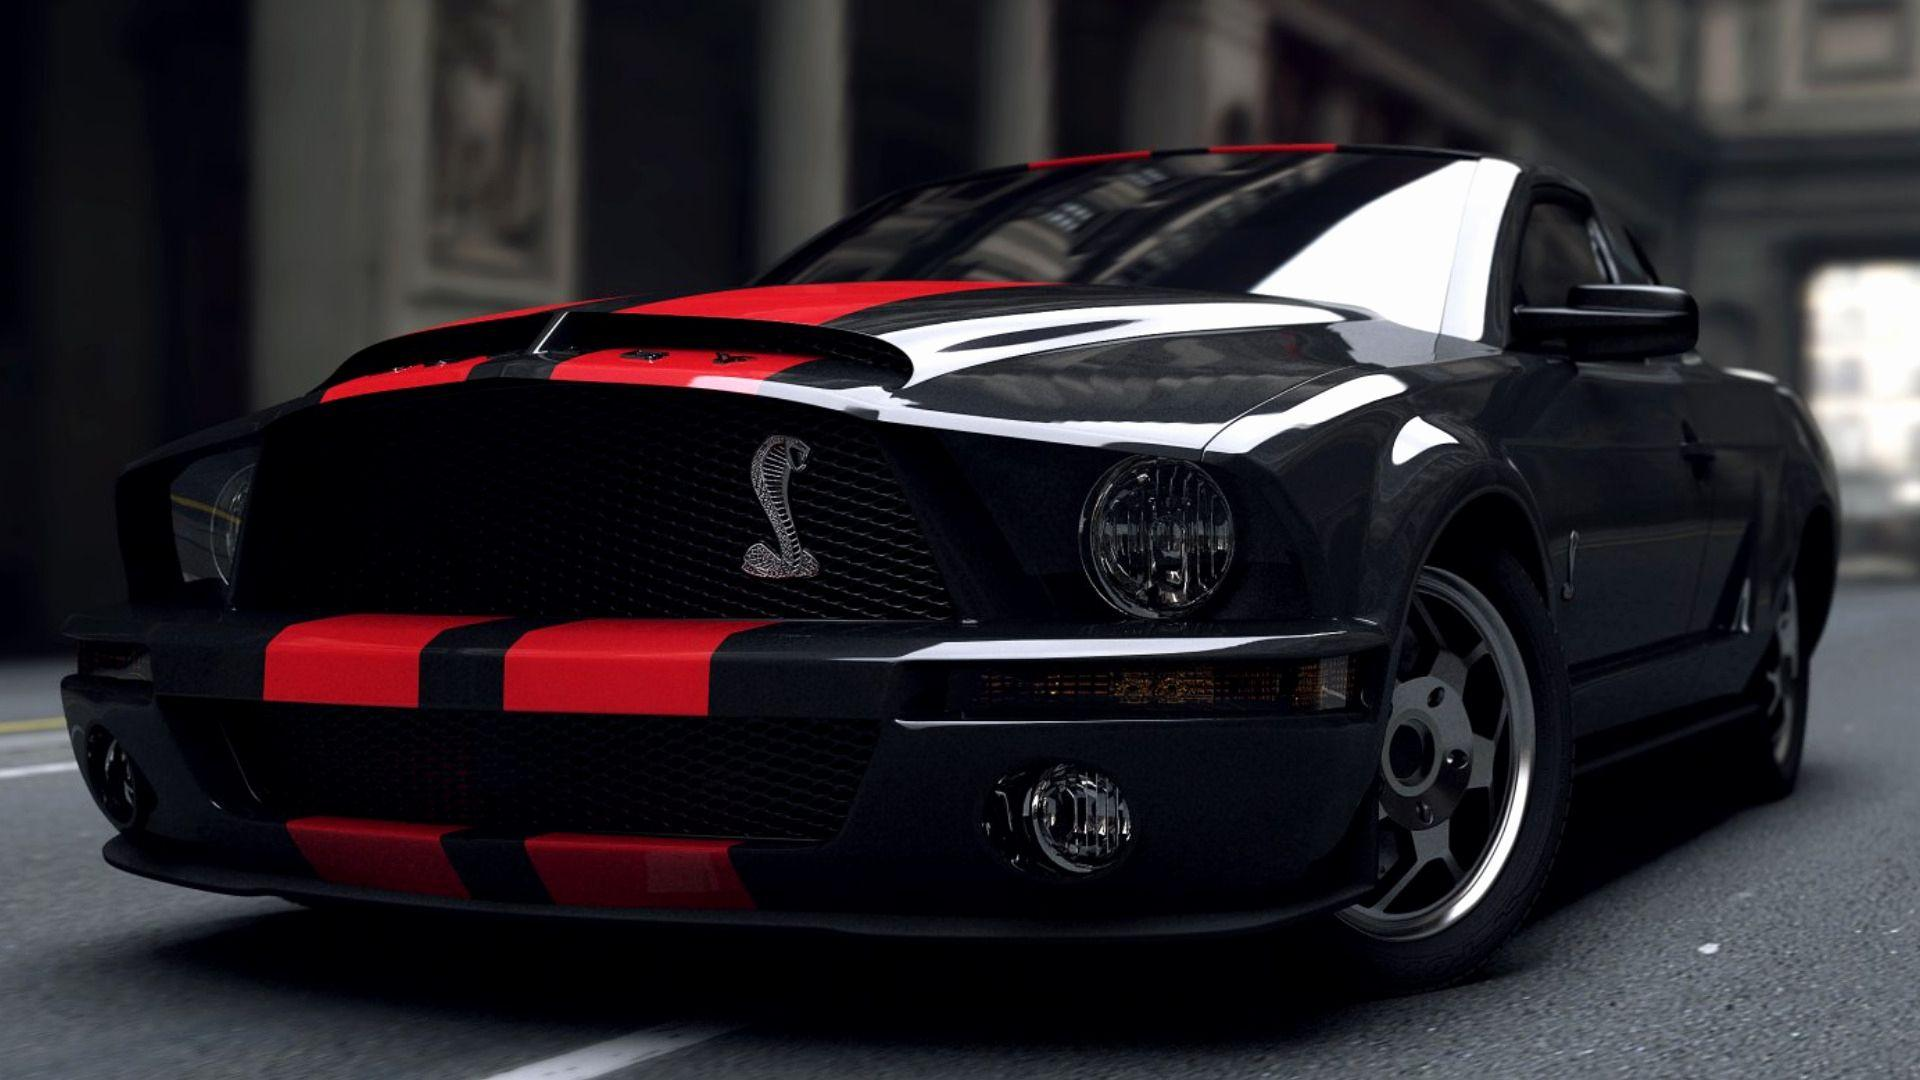 Mustang Cars Wallpapers Inspirational ford Gt Mustang Car Wallpapers